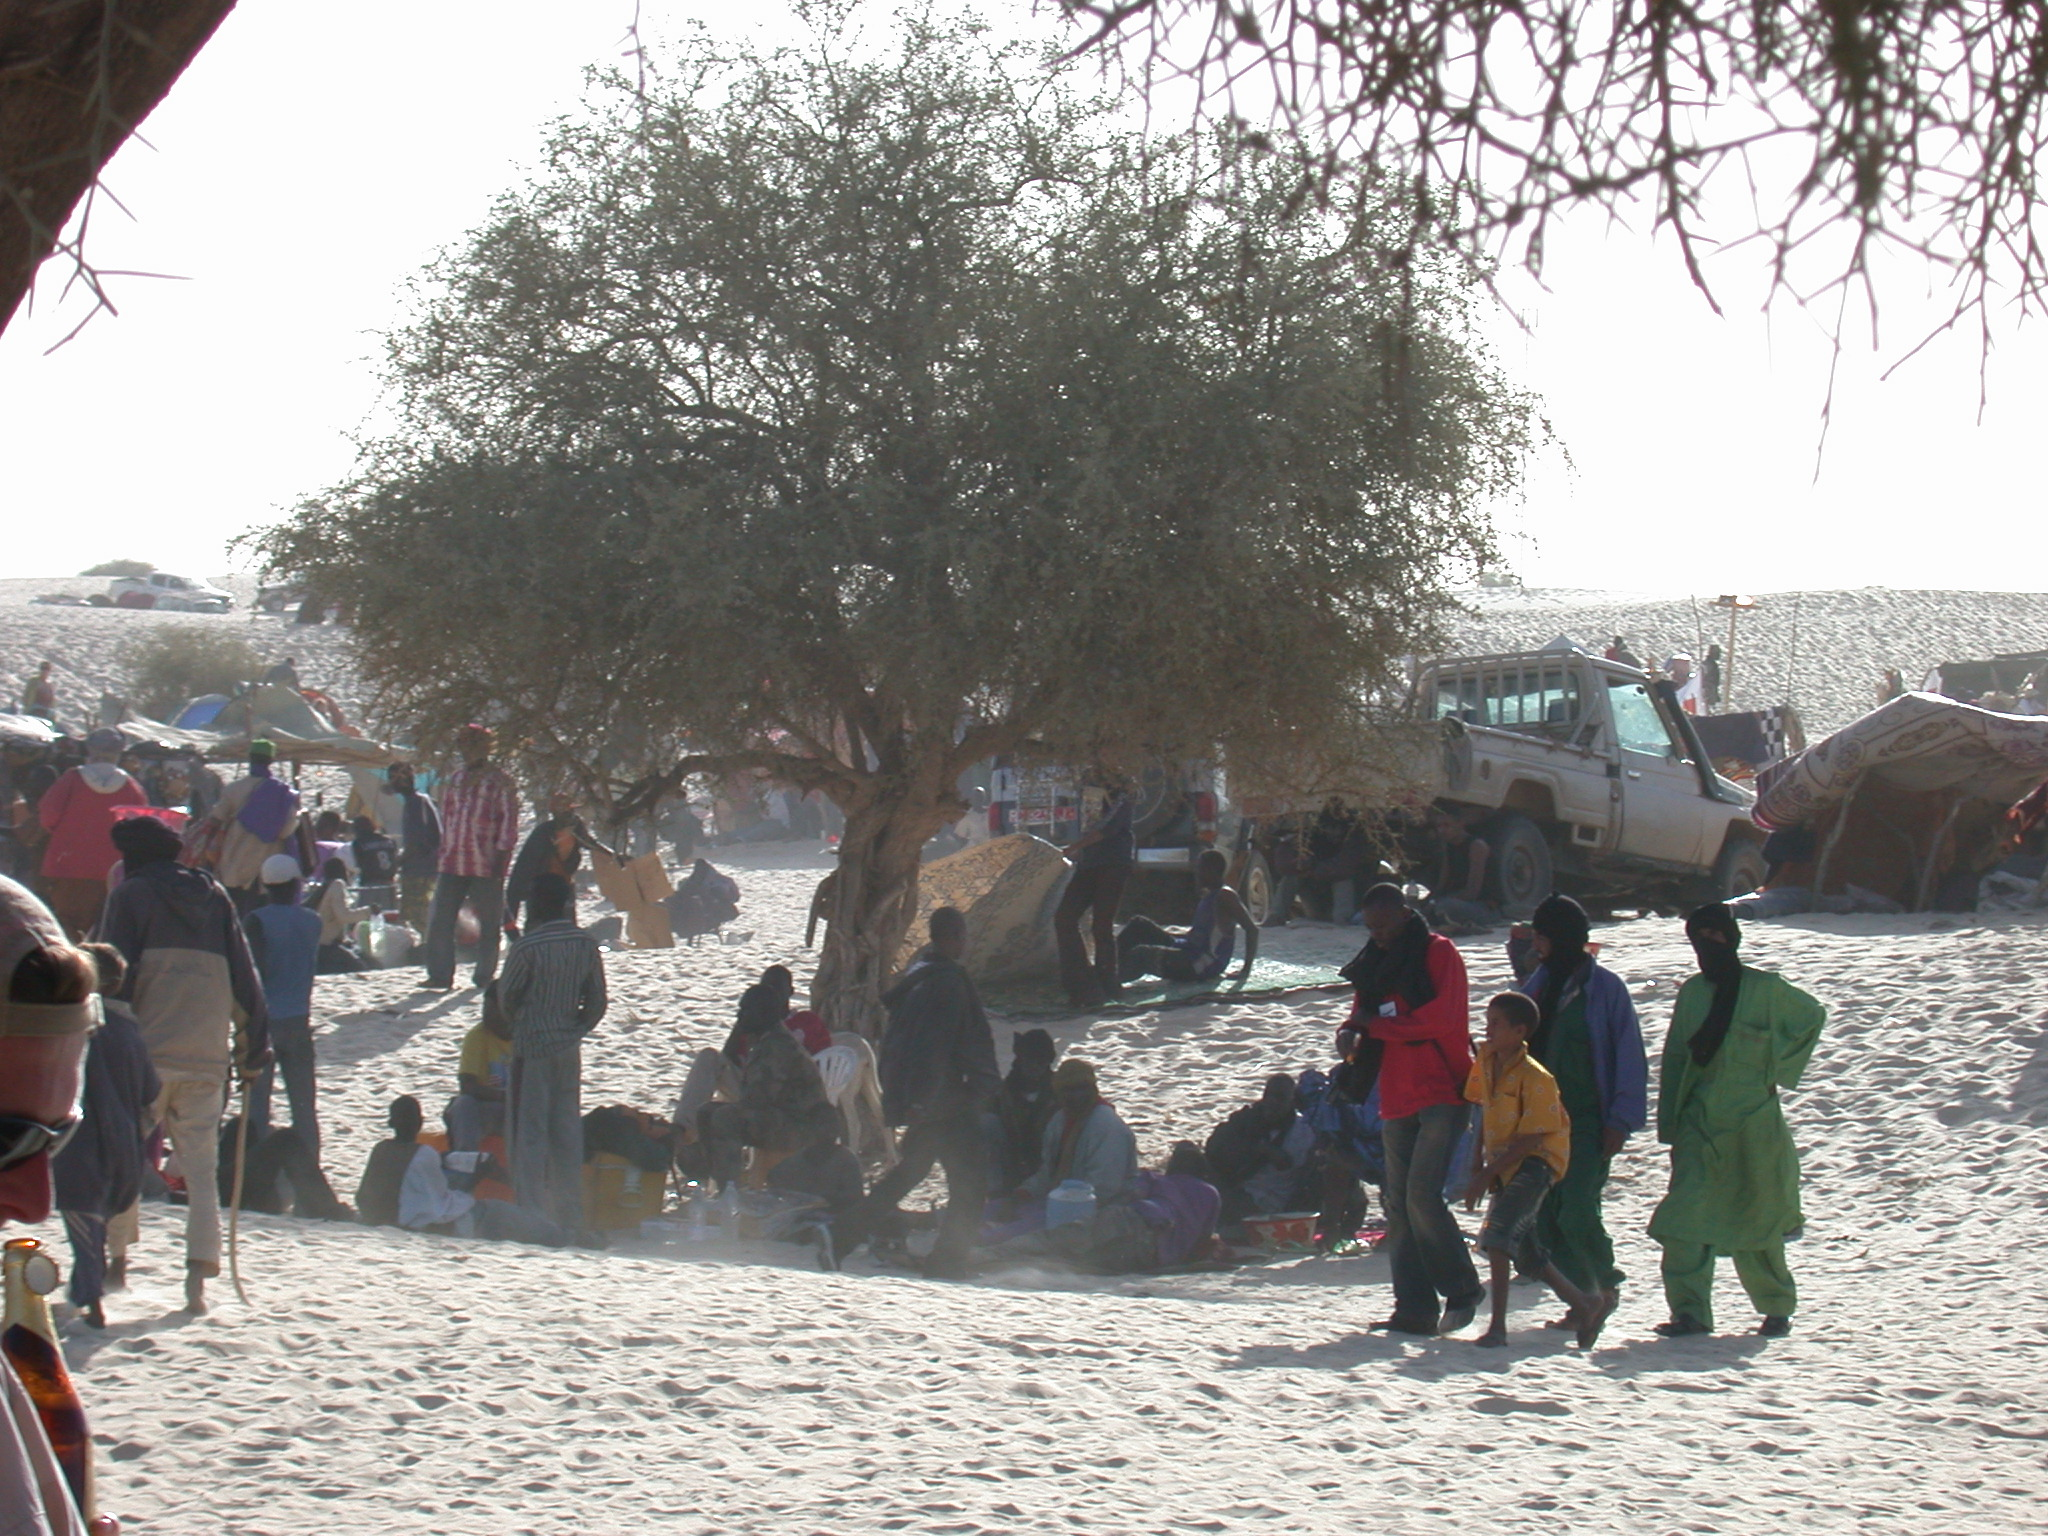 Attendees Gathering and Setting Up Traditional Tents, Festival in the Desert, Essakane, Mali